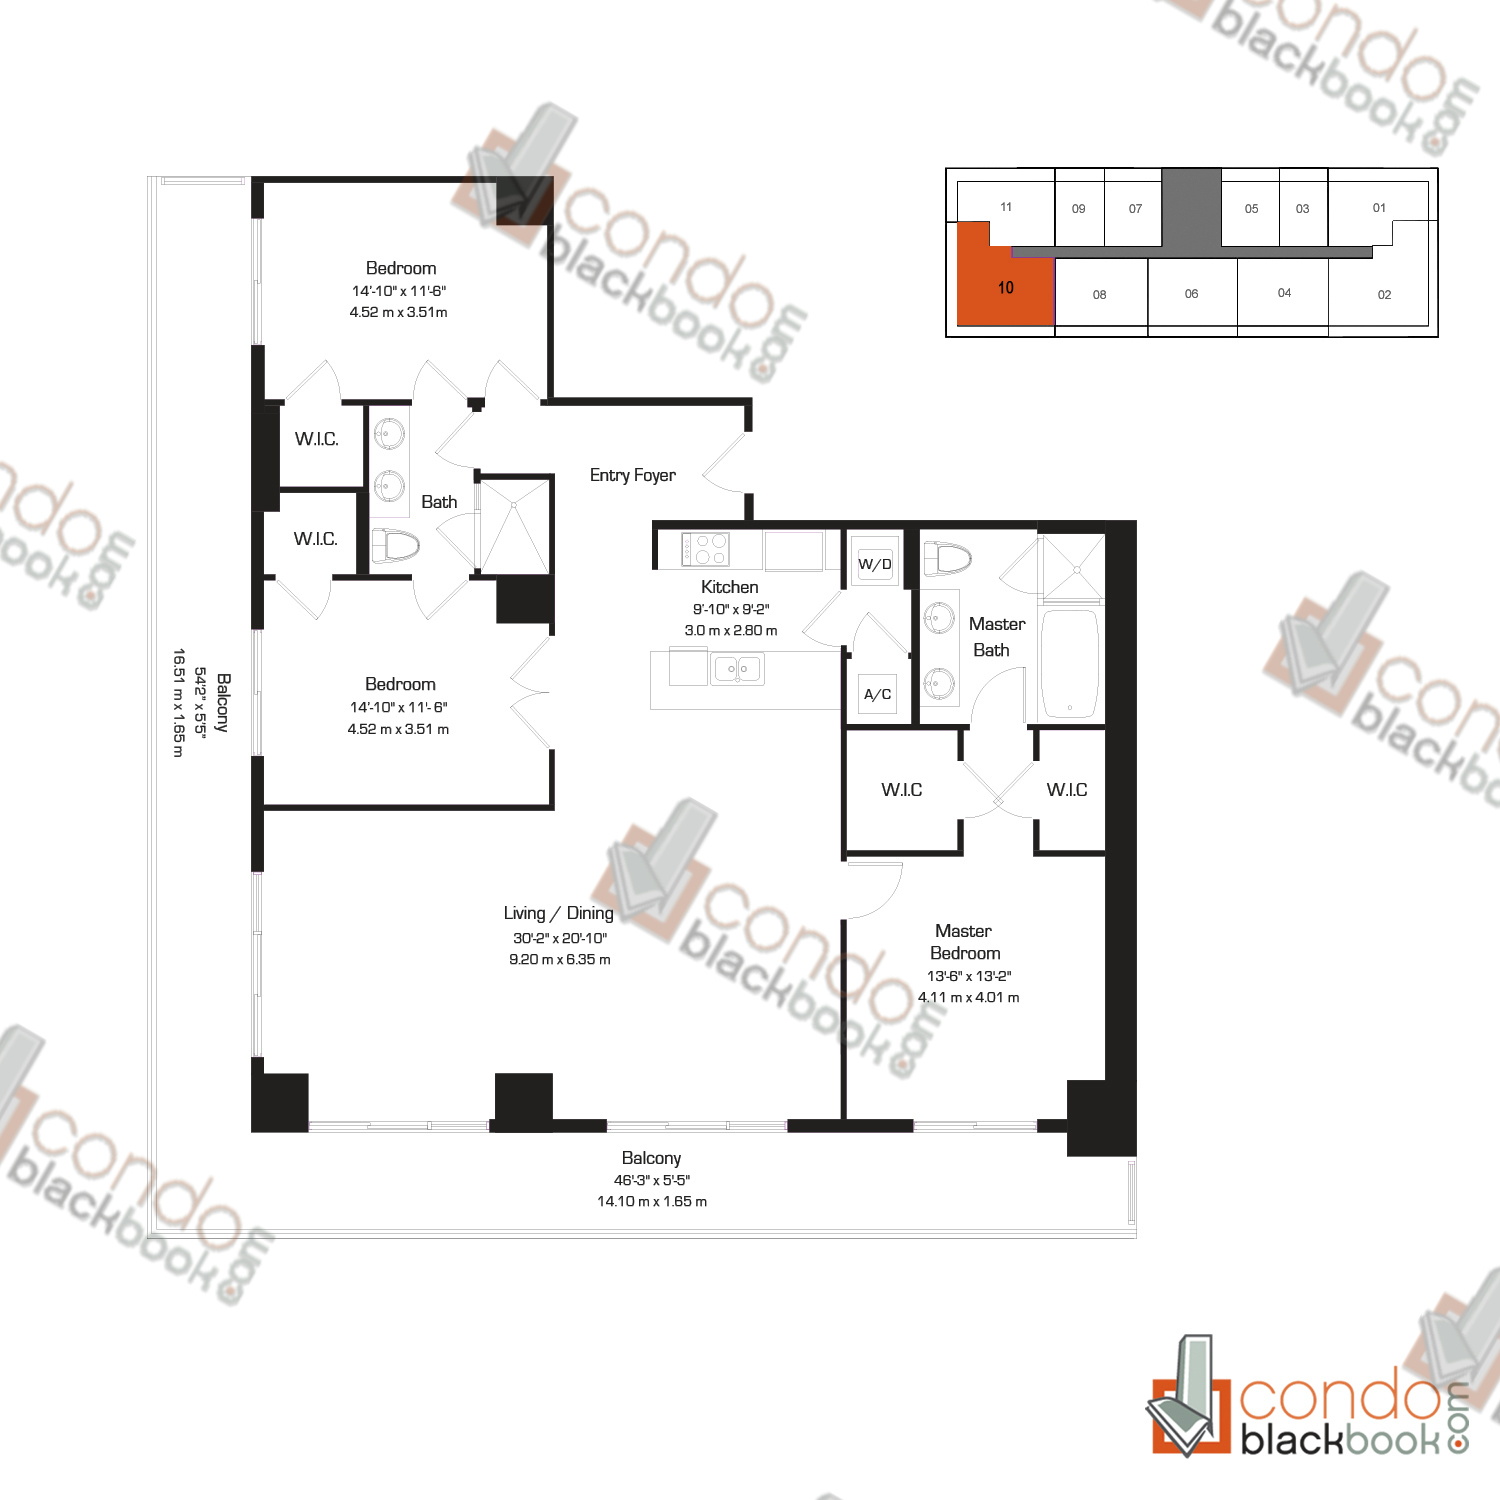 Floor plan for 50 Biscayne Downtown Miami Miami, model A, line 10, 3/2 bedrooms, 1,789 sq ft